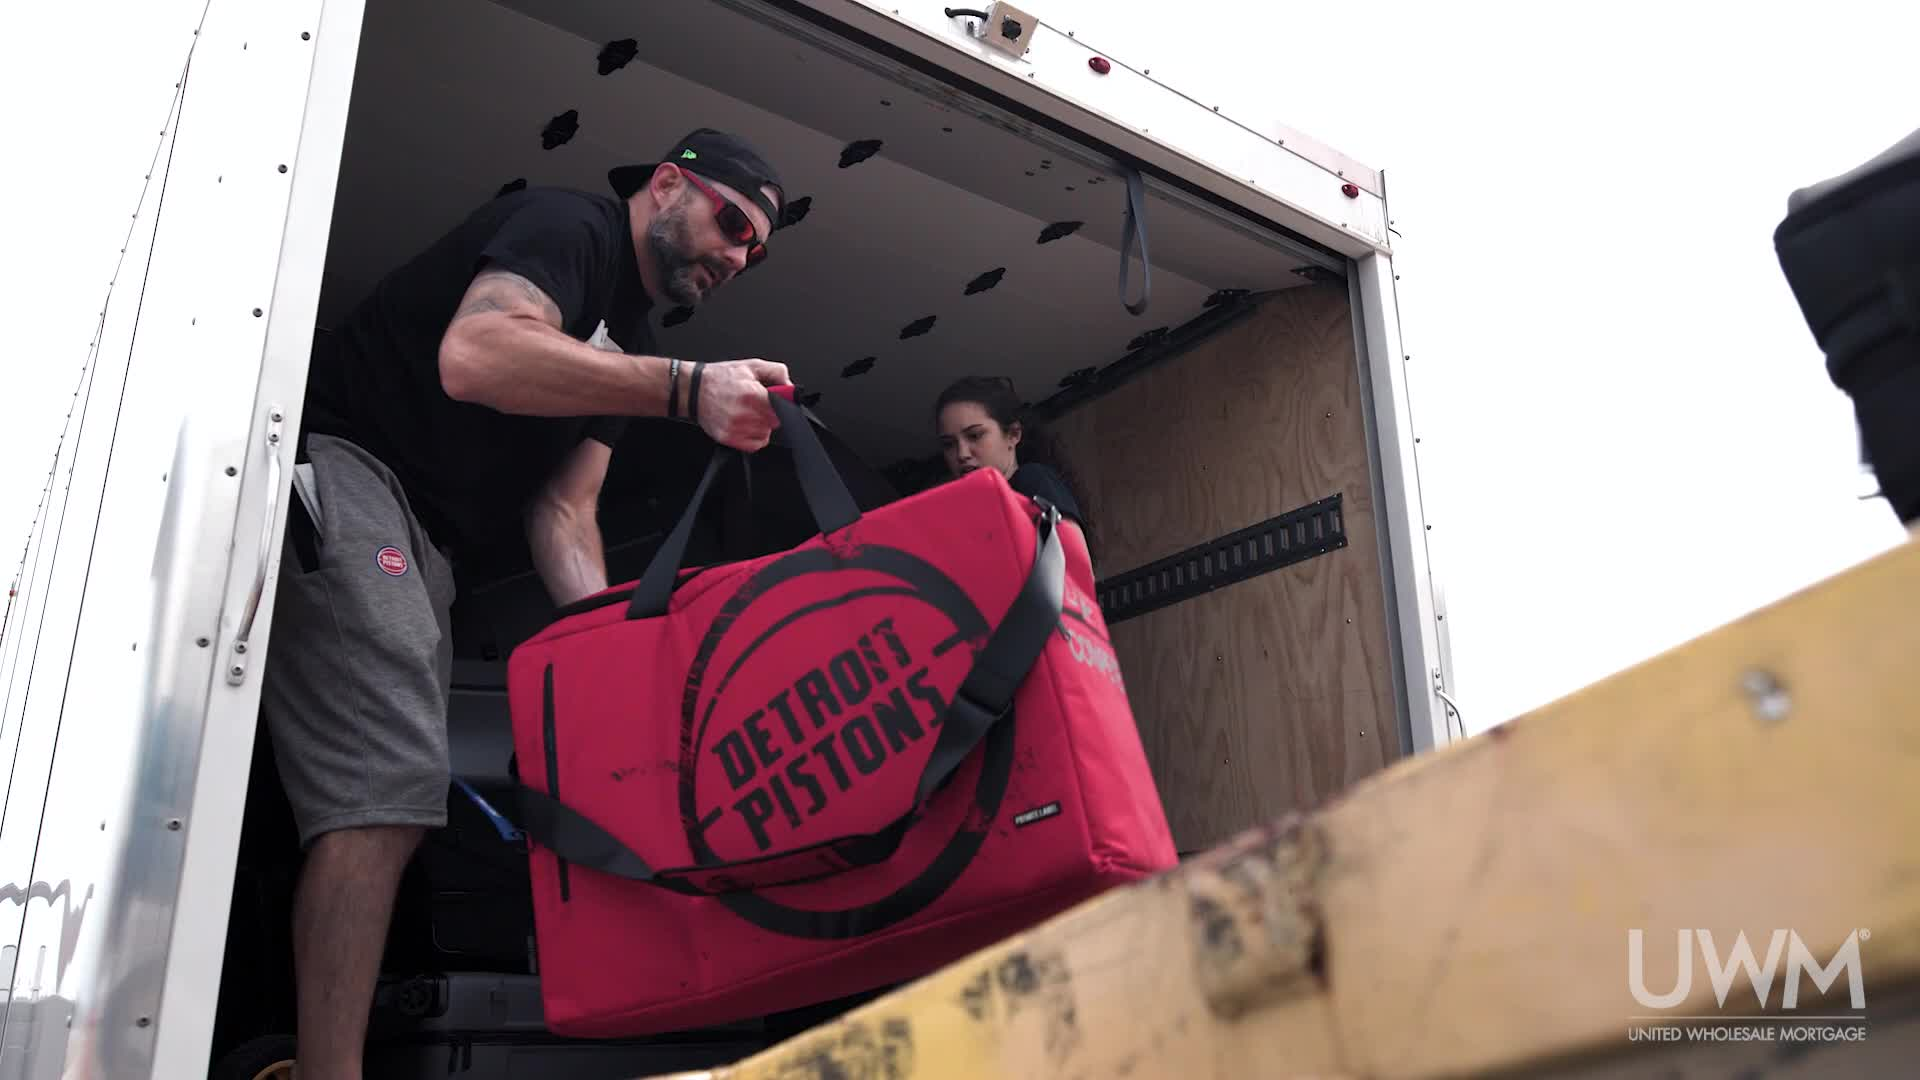 Equipment Room on the Road, presented by UWM